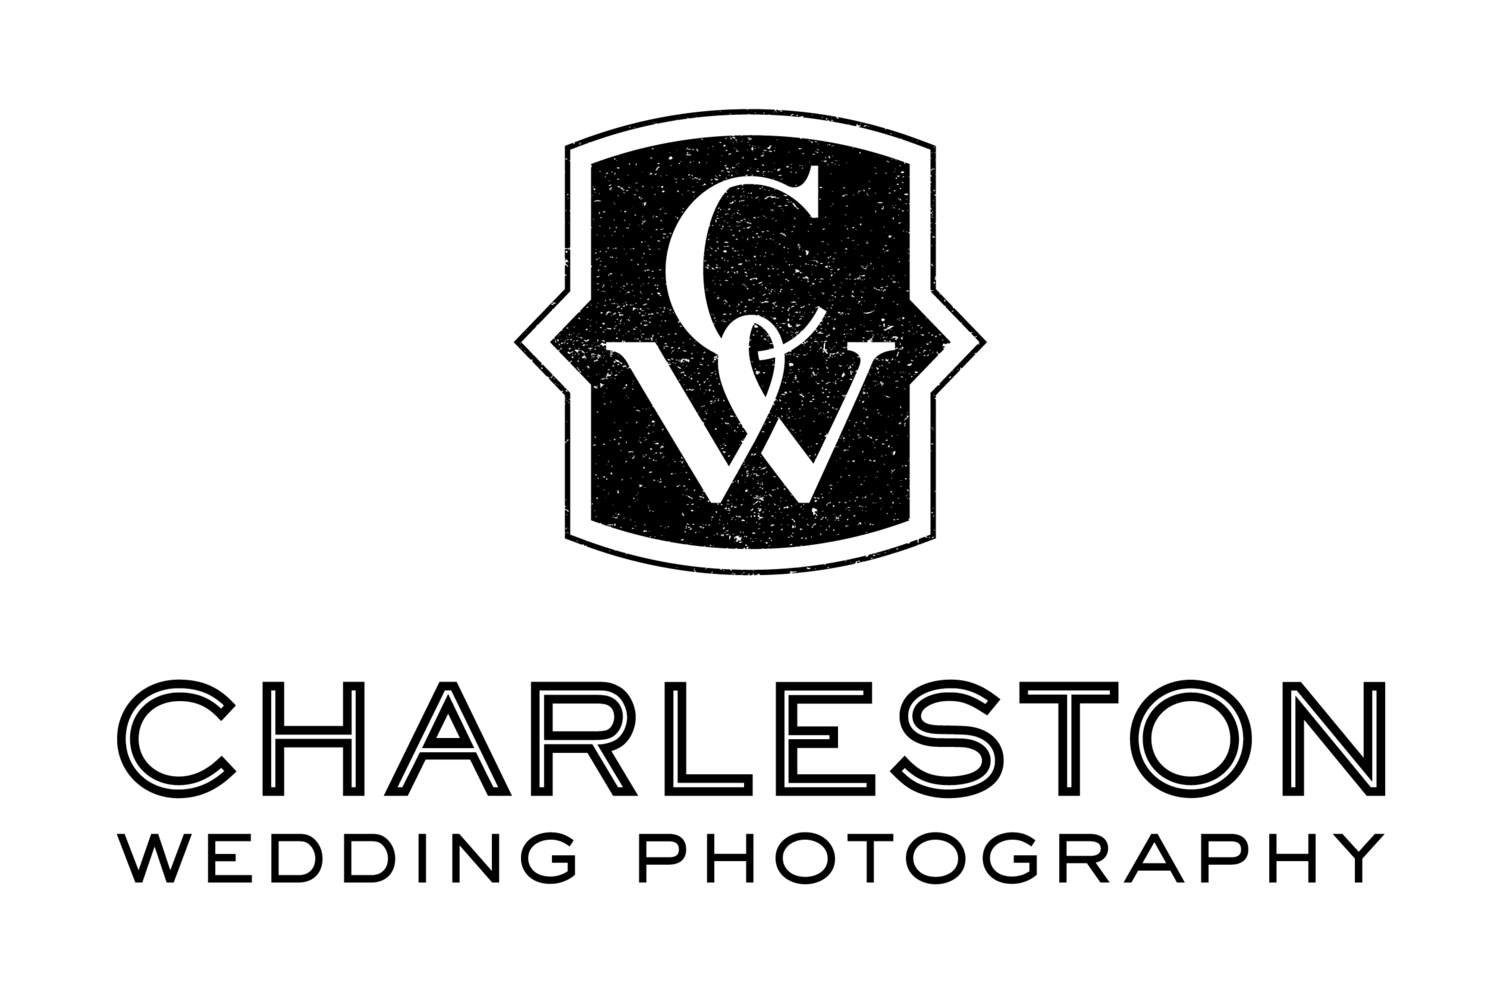 Charleston Wedding Photography